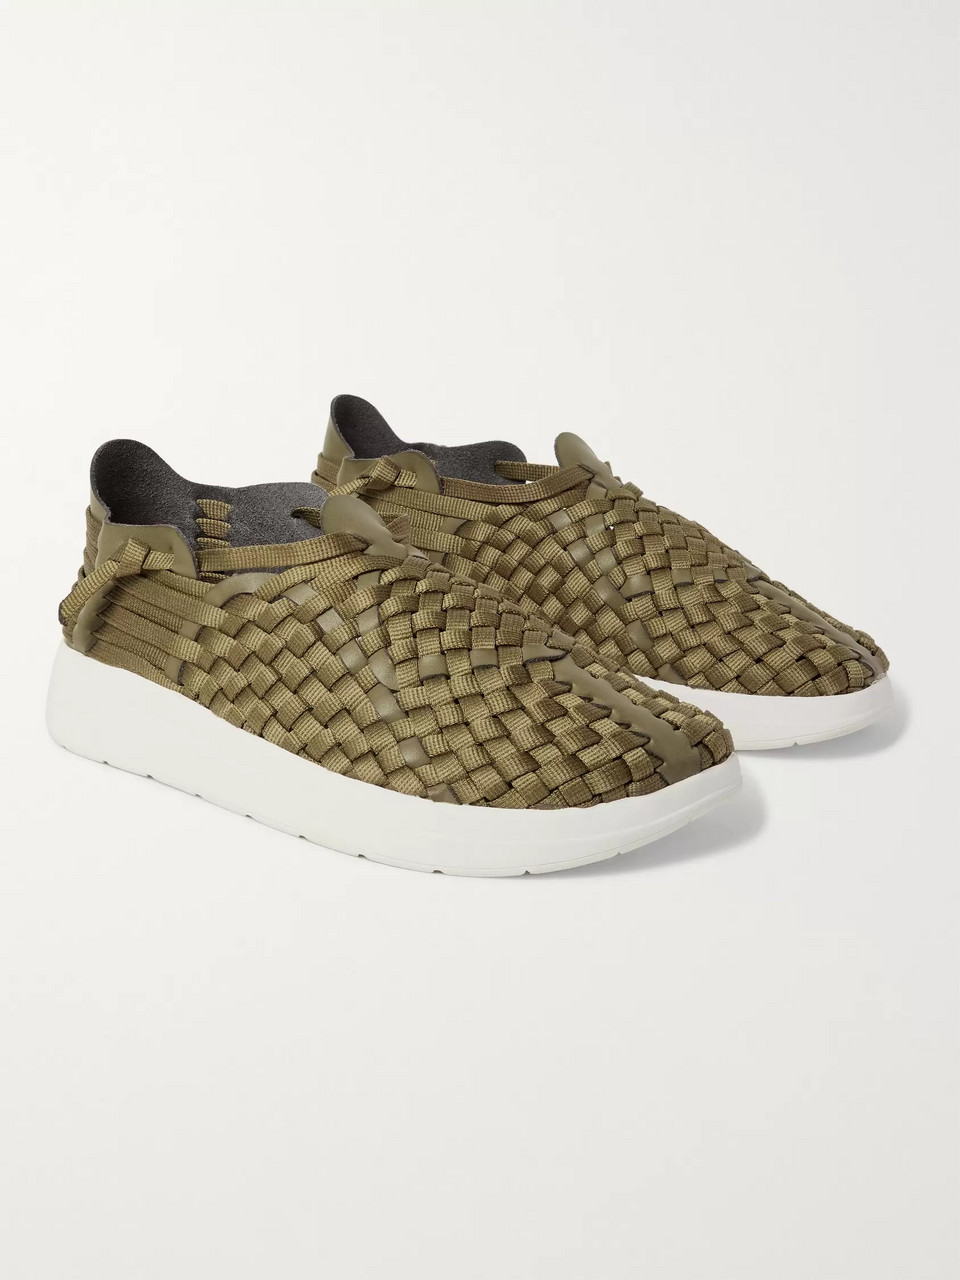 Malibu Latigo Woven Faux Leather and Nylon-Webbing Shoes